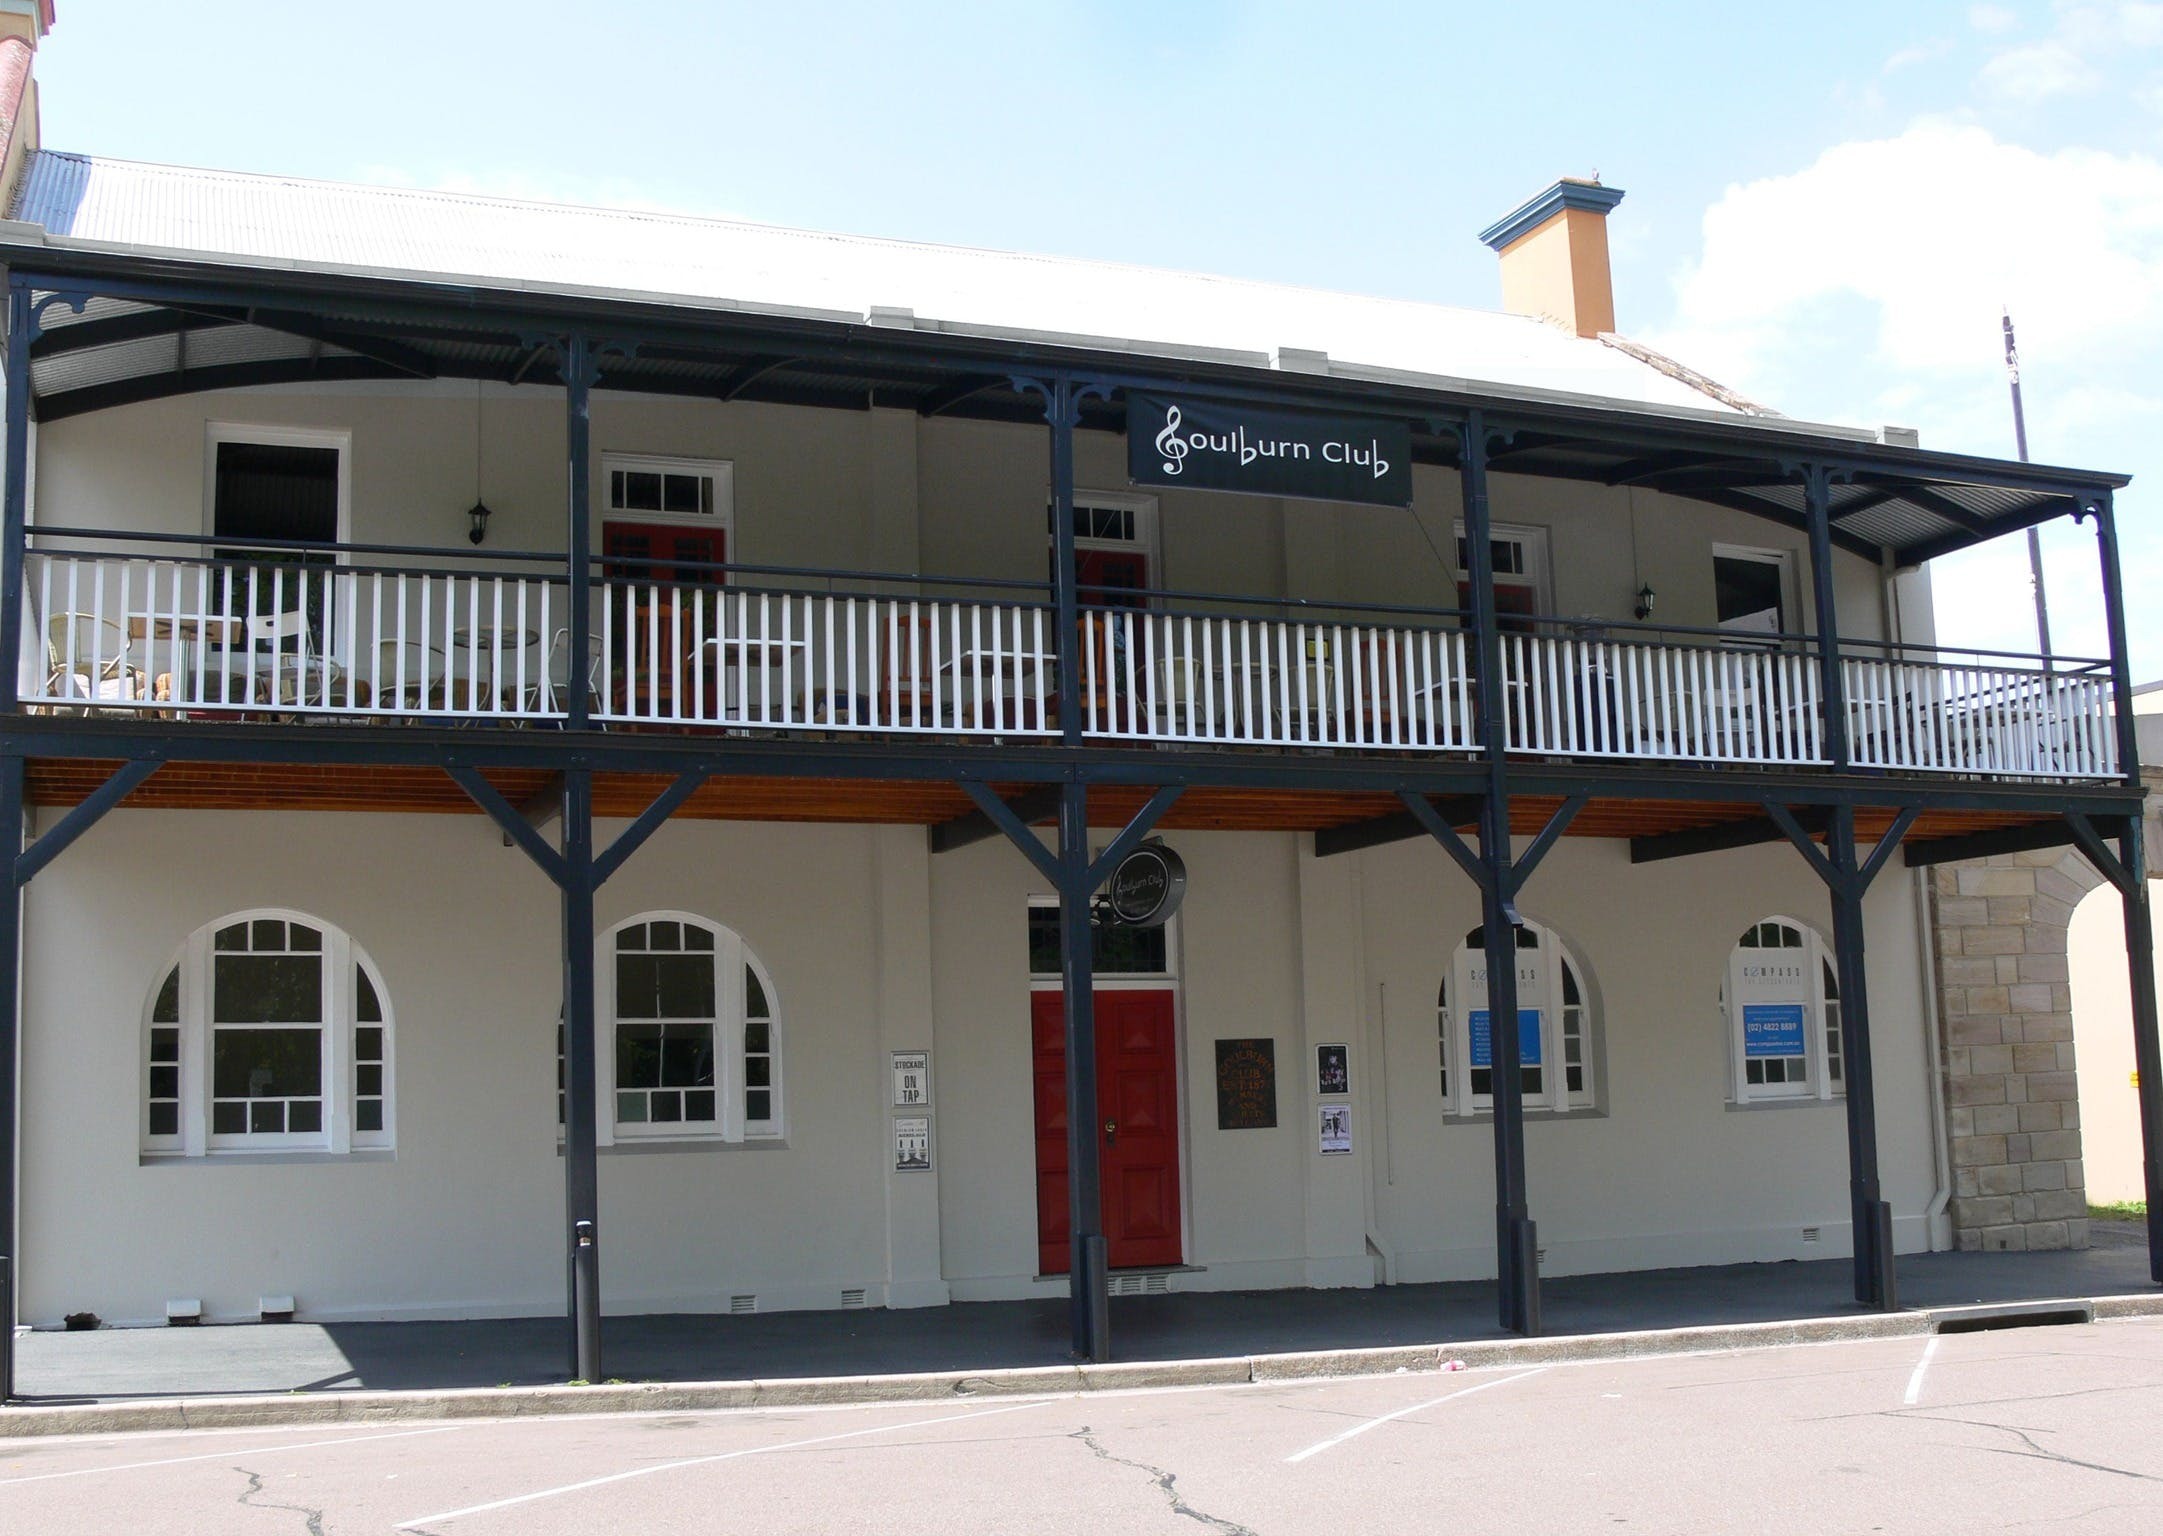 Open Mic Night at the Goulburn Club - Wagga Wagga Accommodation